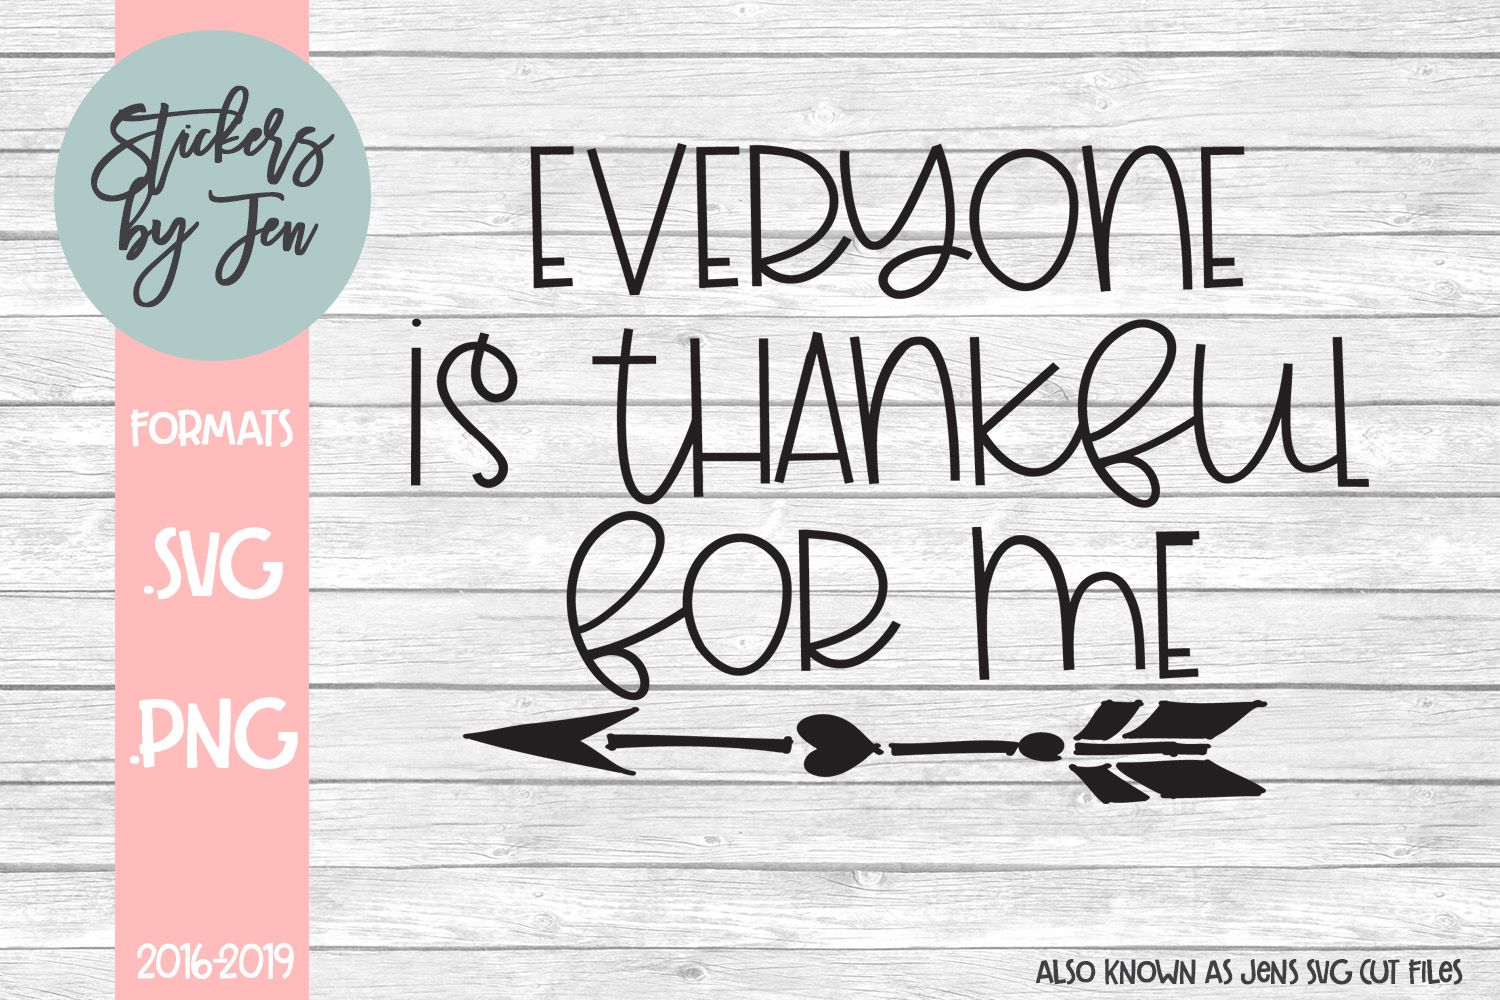 Download Free Everyone Is Thankful For Me Svg Graphic By Stickers By Jennifer for Cricut Explore, Silhouette and other cutting machines.